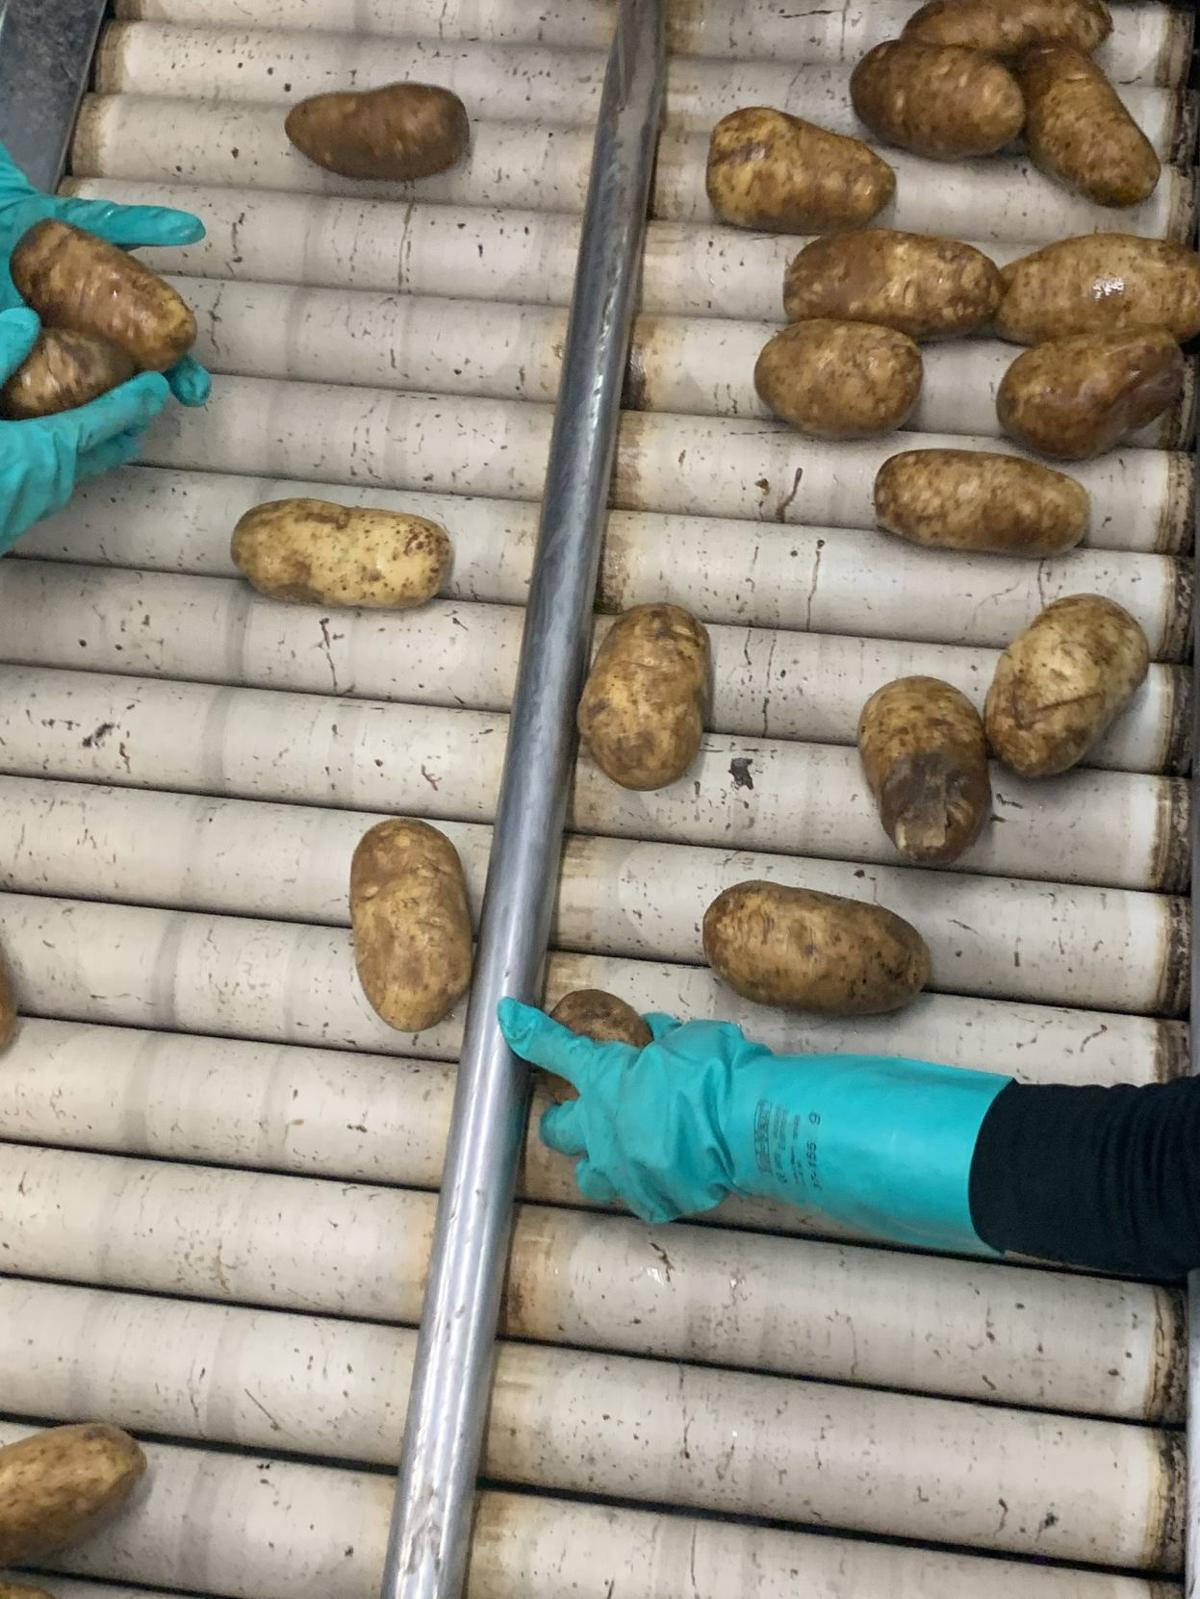 Potato conveyor